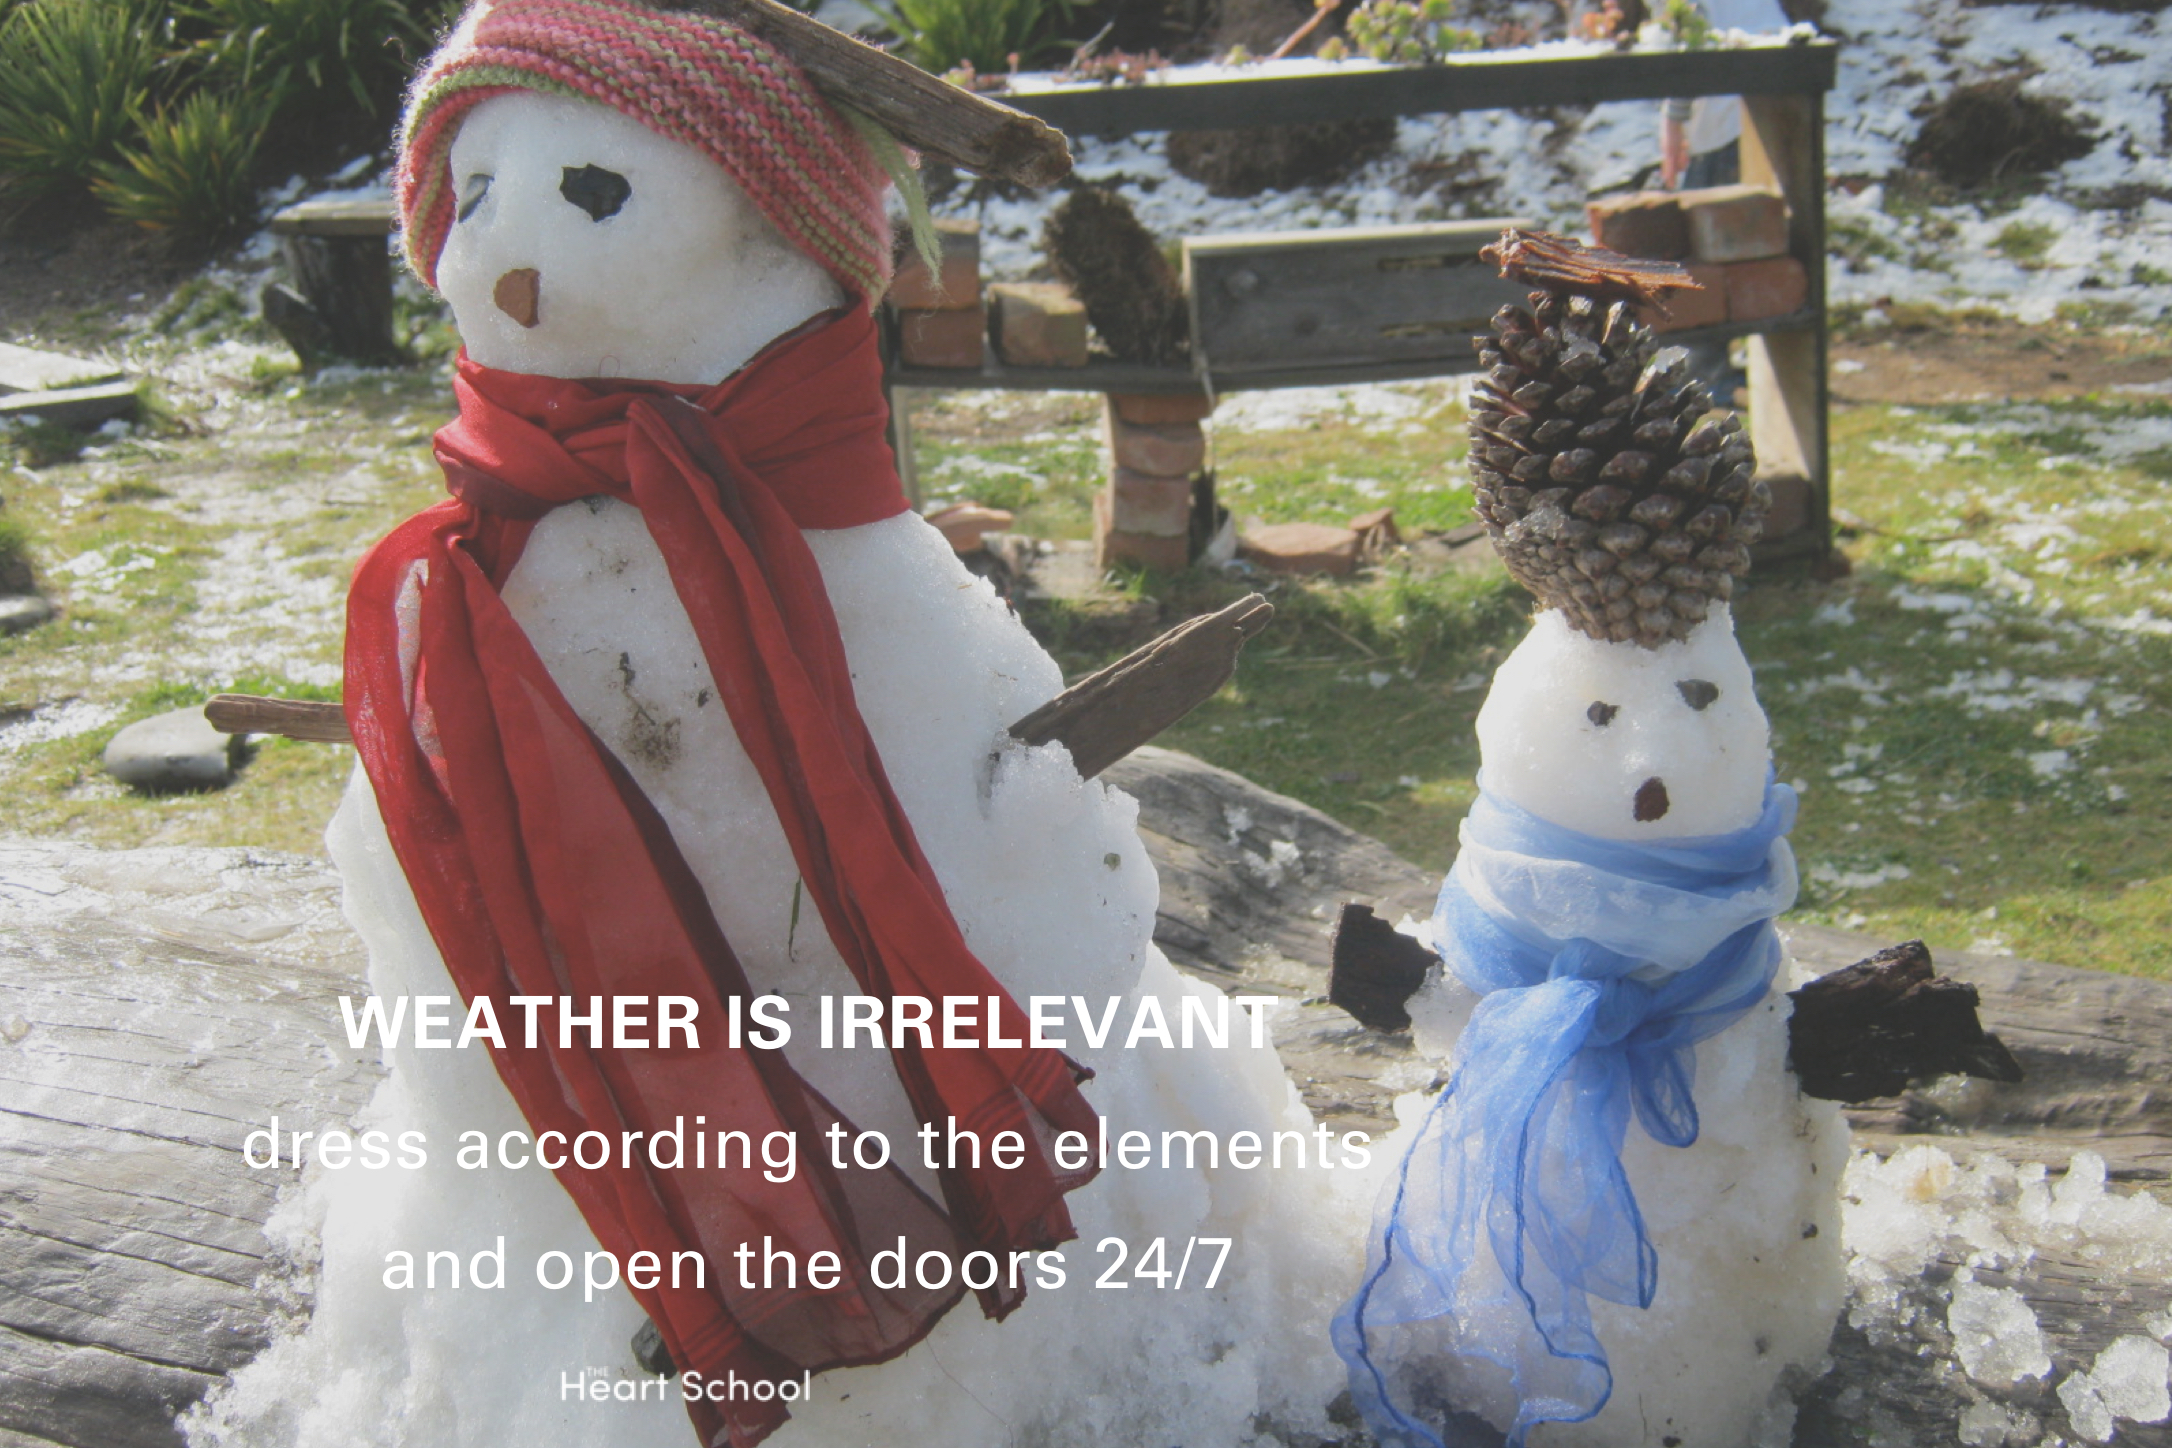 Children don't seem to feel the cold as we, adults do. While they do need to be wrapped up warmly with suitable clothes that will keep them dry, here in New Zealand, they should be able to play outside in all temperatures. It is a myth that children catch a cold by being out in the cold -only catching a virus causes colds. Actually being outside might protect them from colds, as the viruses are more likely to pass from child to child when they are all kept inside. Make sure you go outside every day. Oh, and if you live in an area where snow is part of your season, share it with the children, as we did a few years ago when snowfall hit Kapiti!